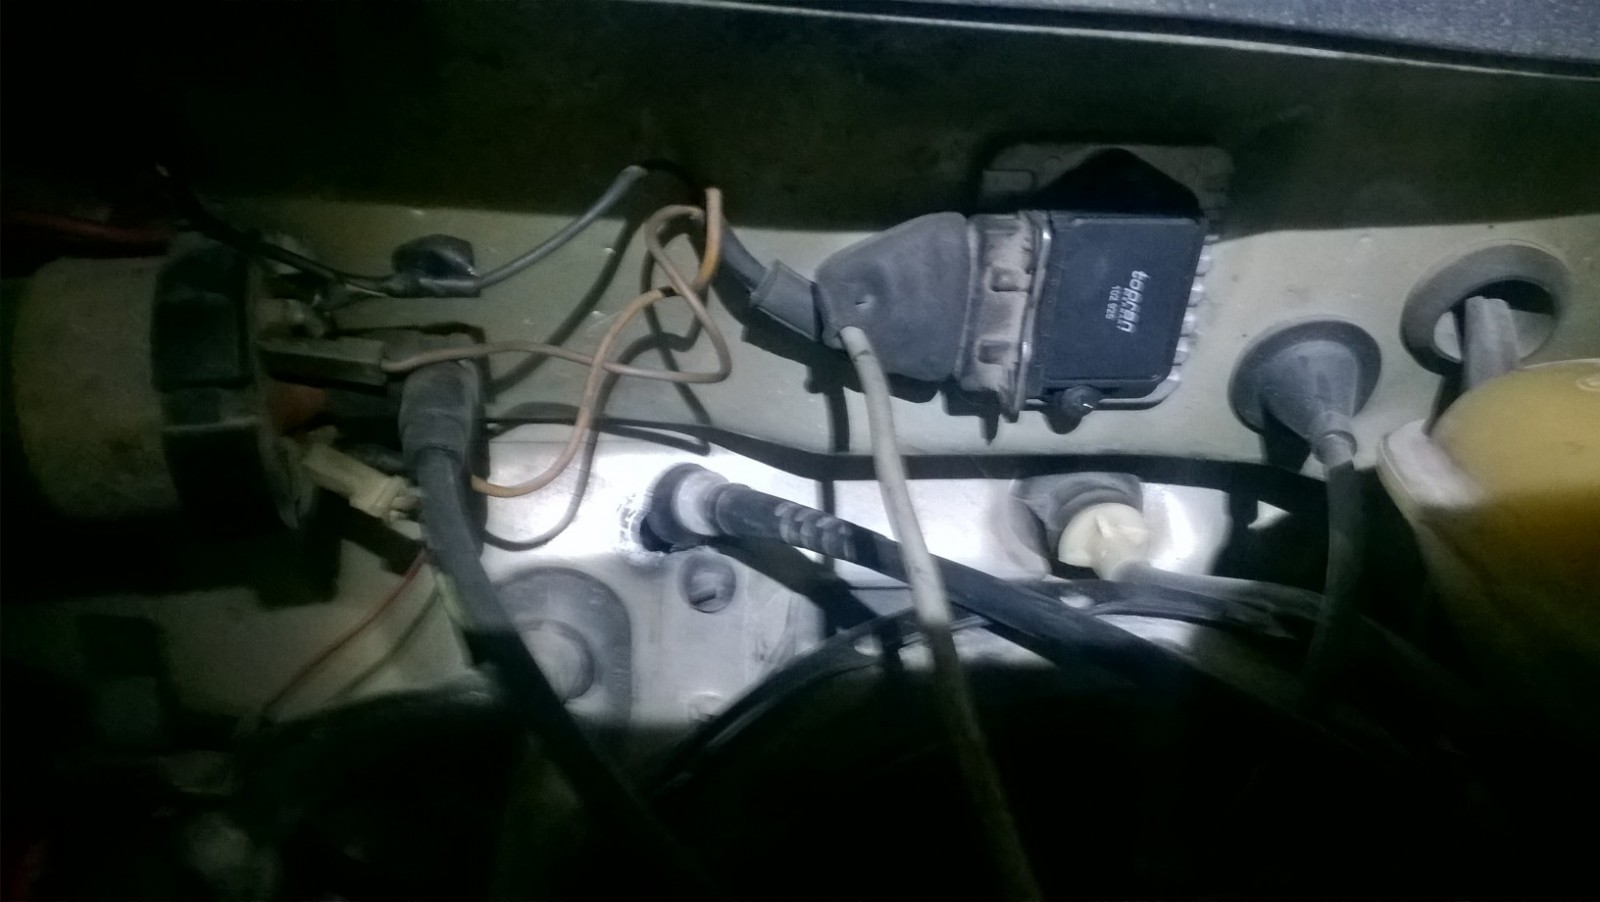 Electronic ignition swap - Engine, Transmission and Exhaust